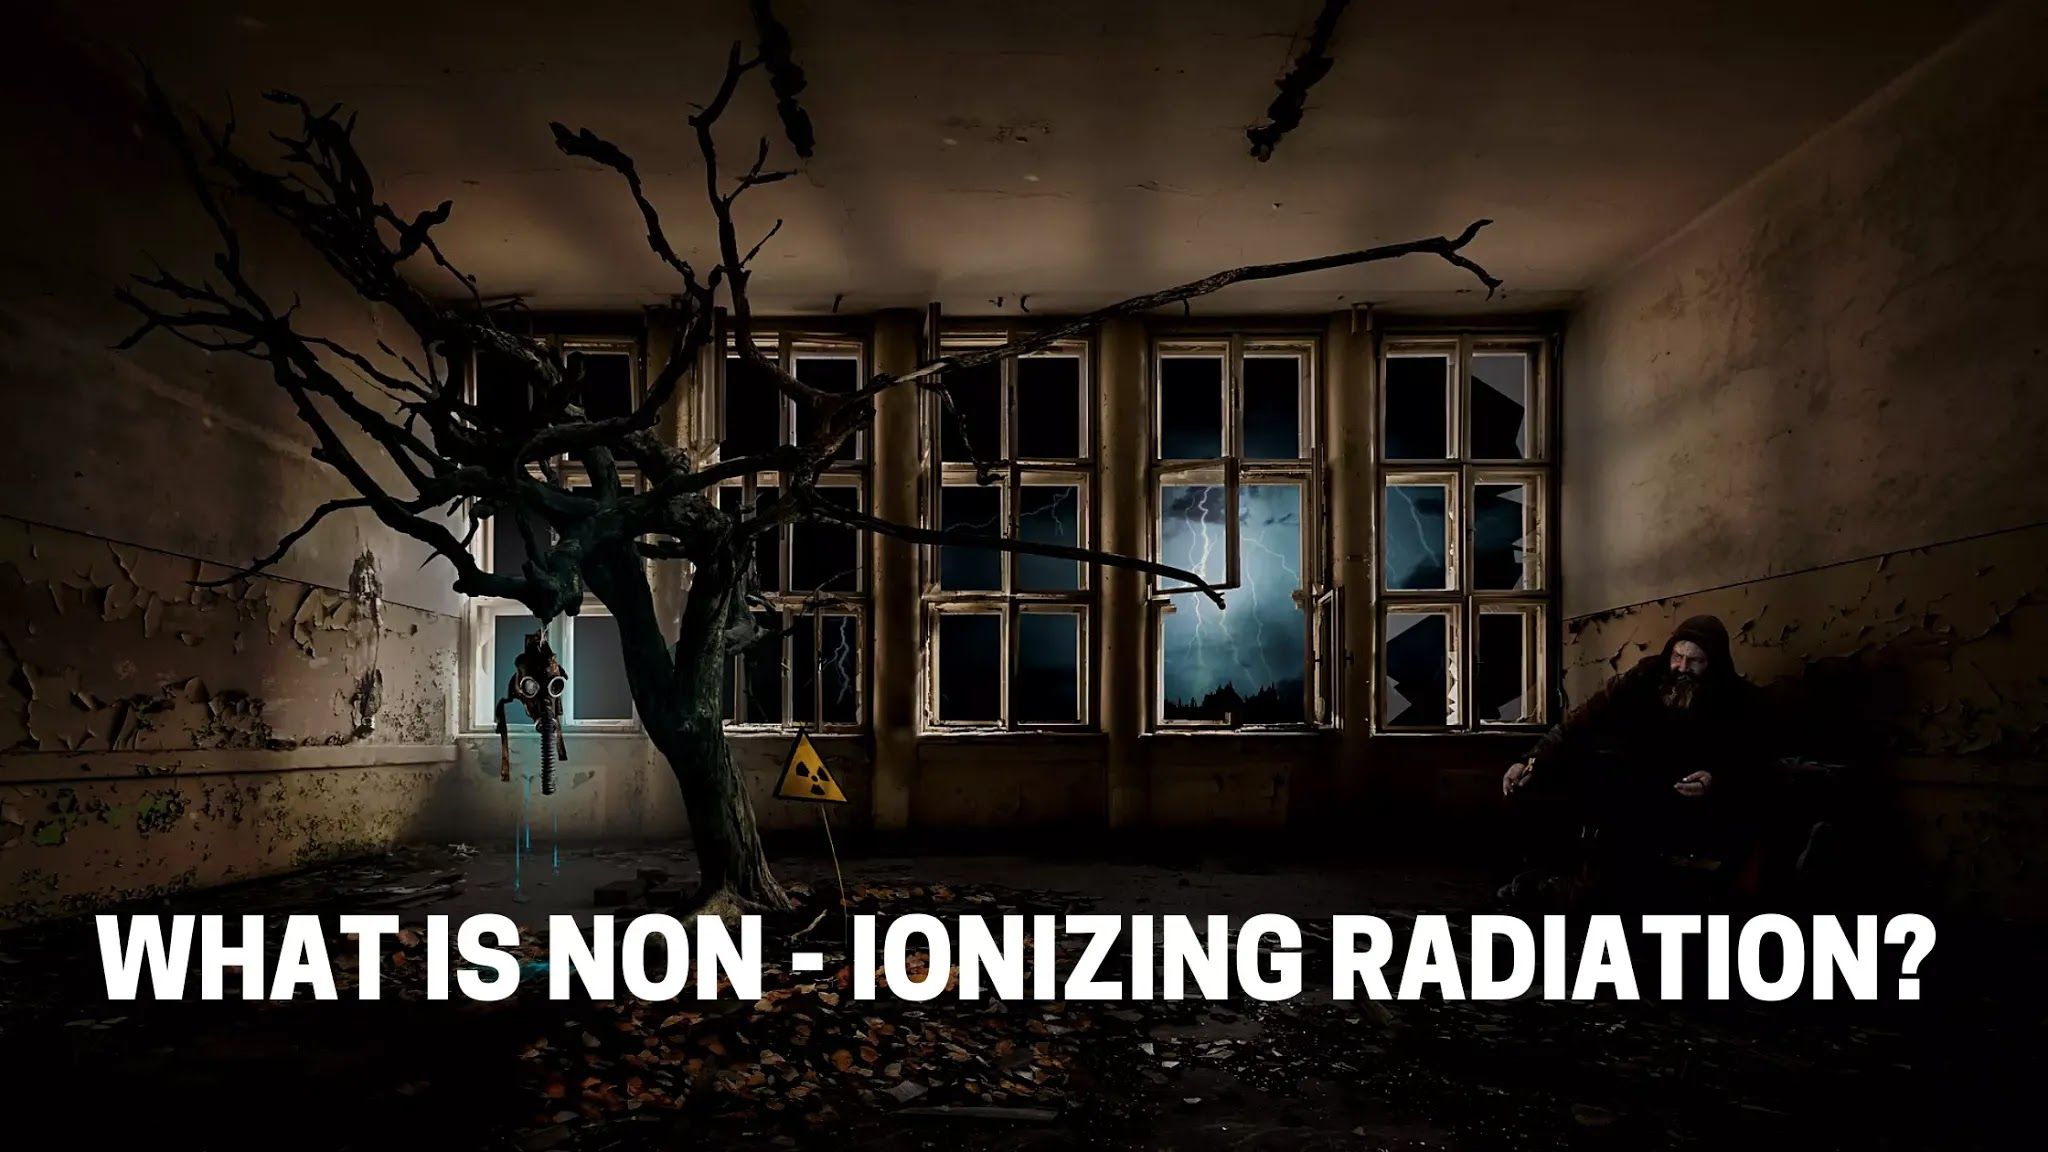 What exactly is radiation?, what is radiation?, What is radiation for Kids?, What is radiation in simple words?, What is radiation heat transfer?, Types of radiation?, What is radiation therapy?, What is radiation and why is it bad?, What are the 3 types of radiation?